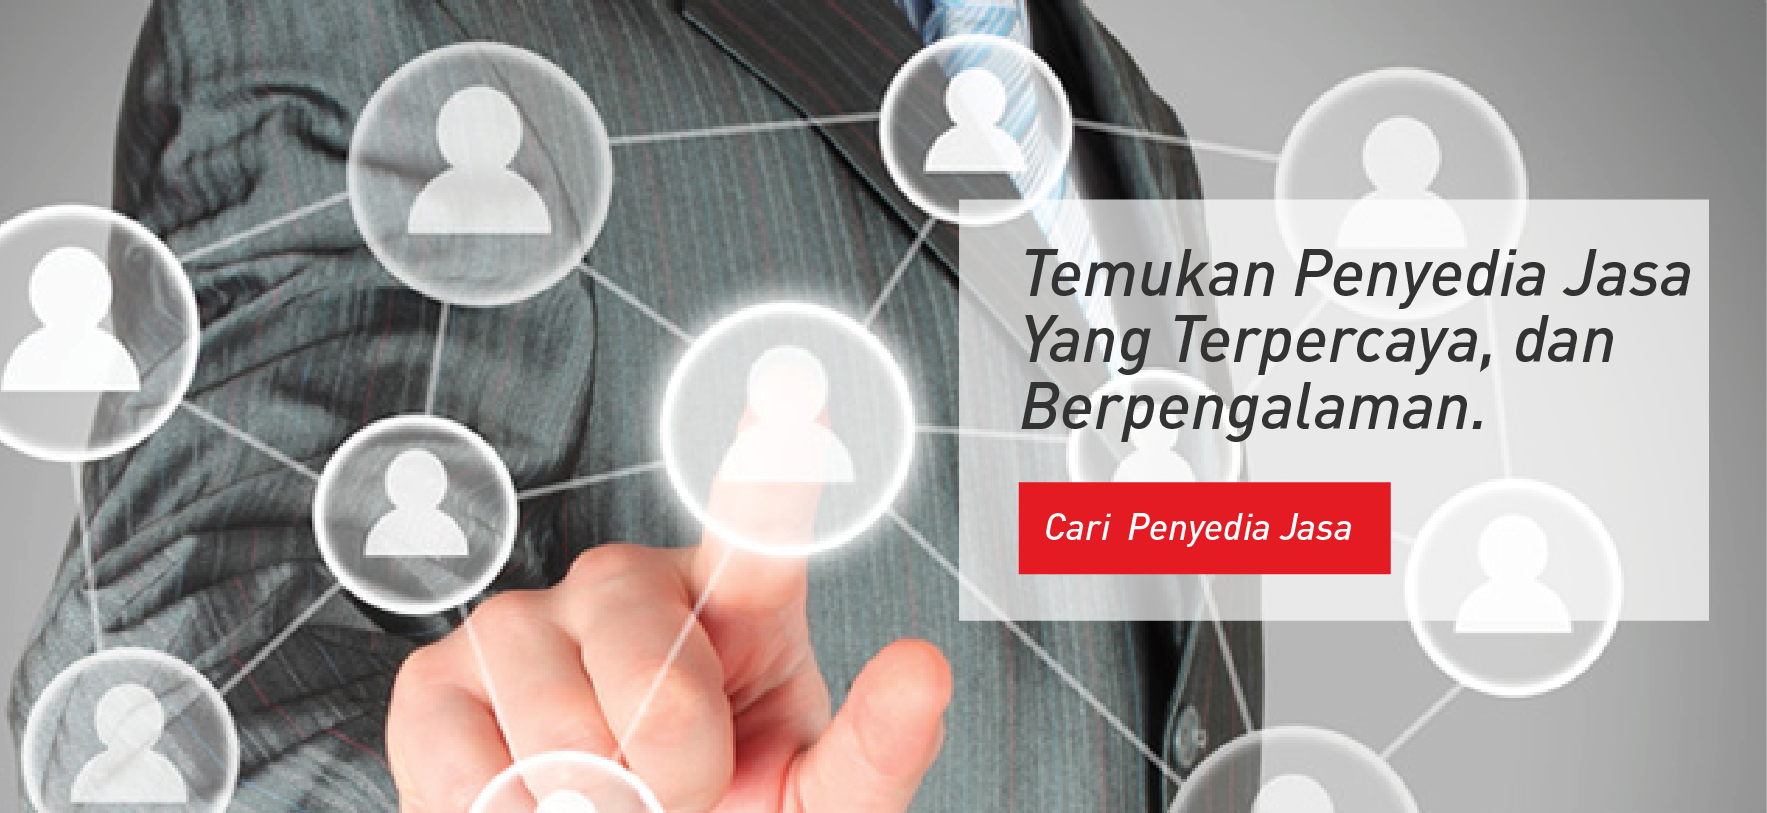 Indotrading Services